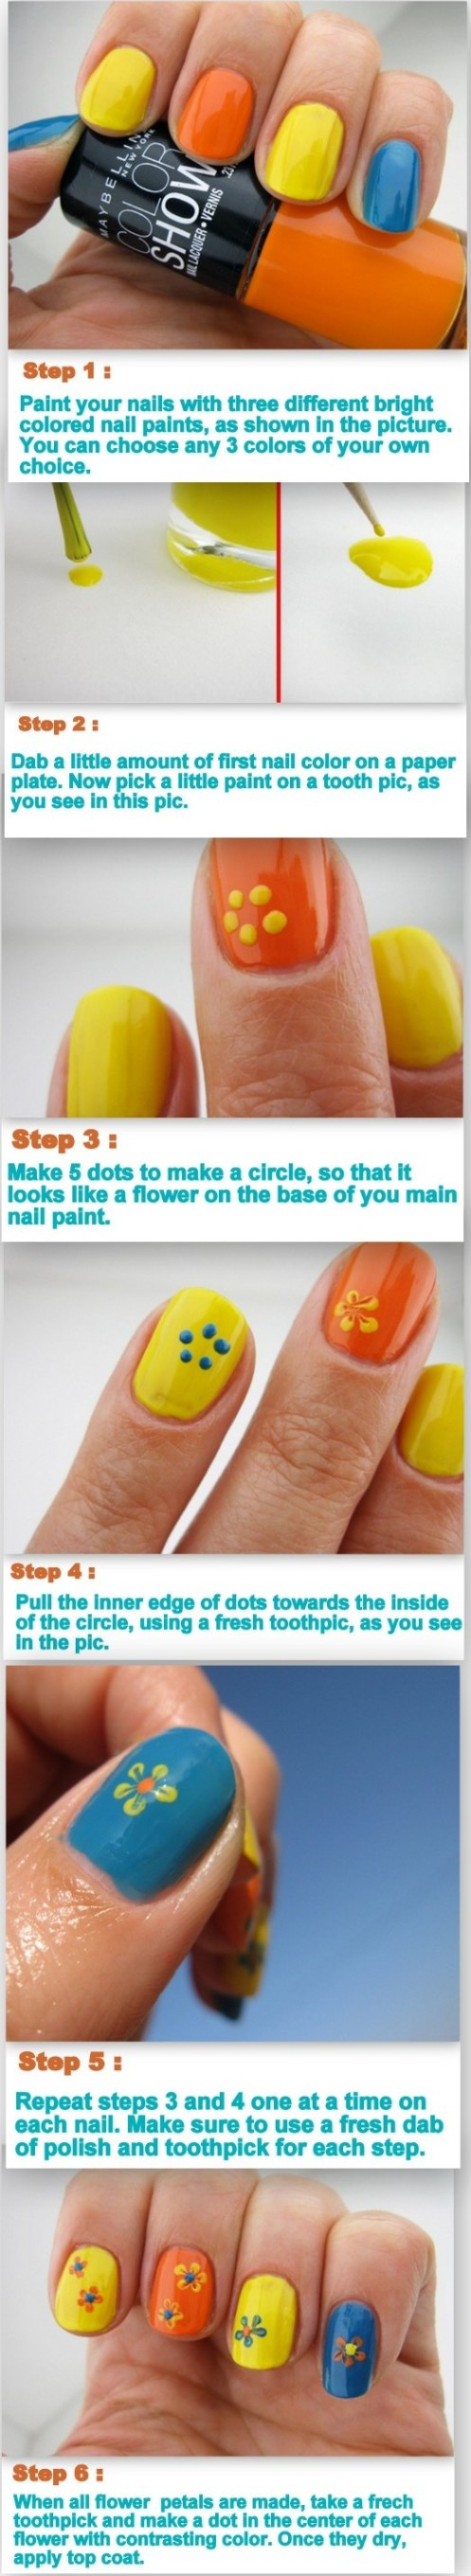 6 Easy To Do Nail Art Tutorials That Actually Look Difficult With